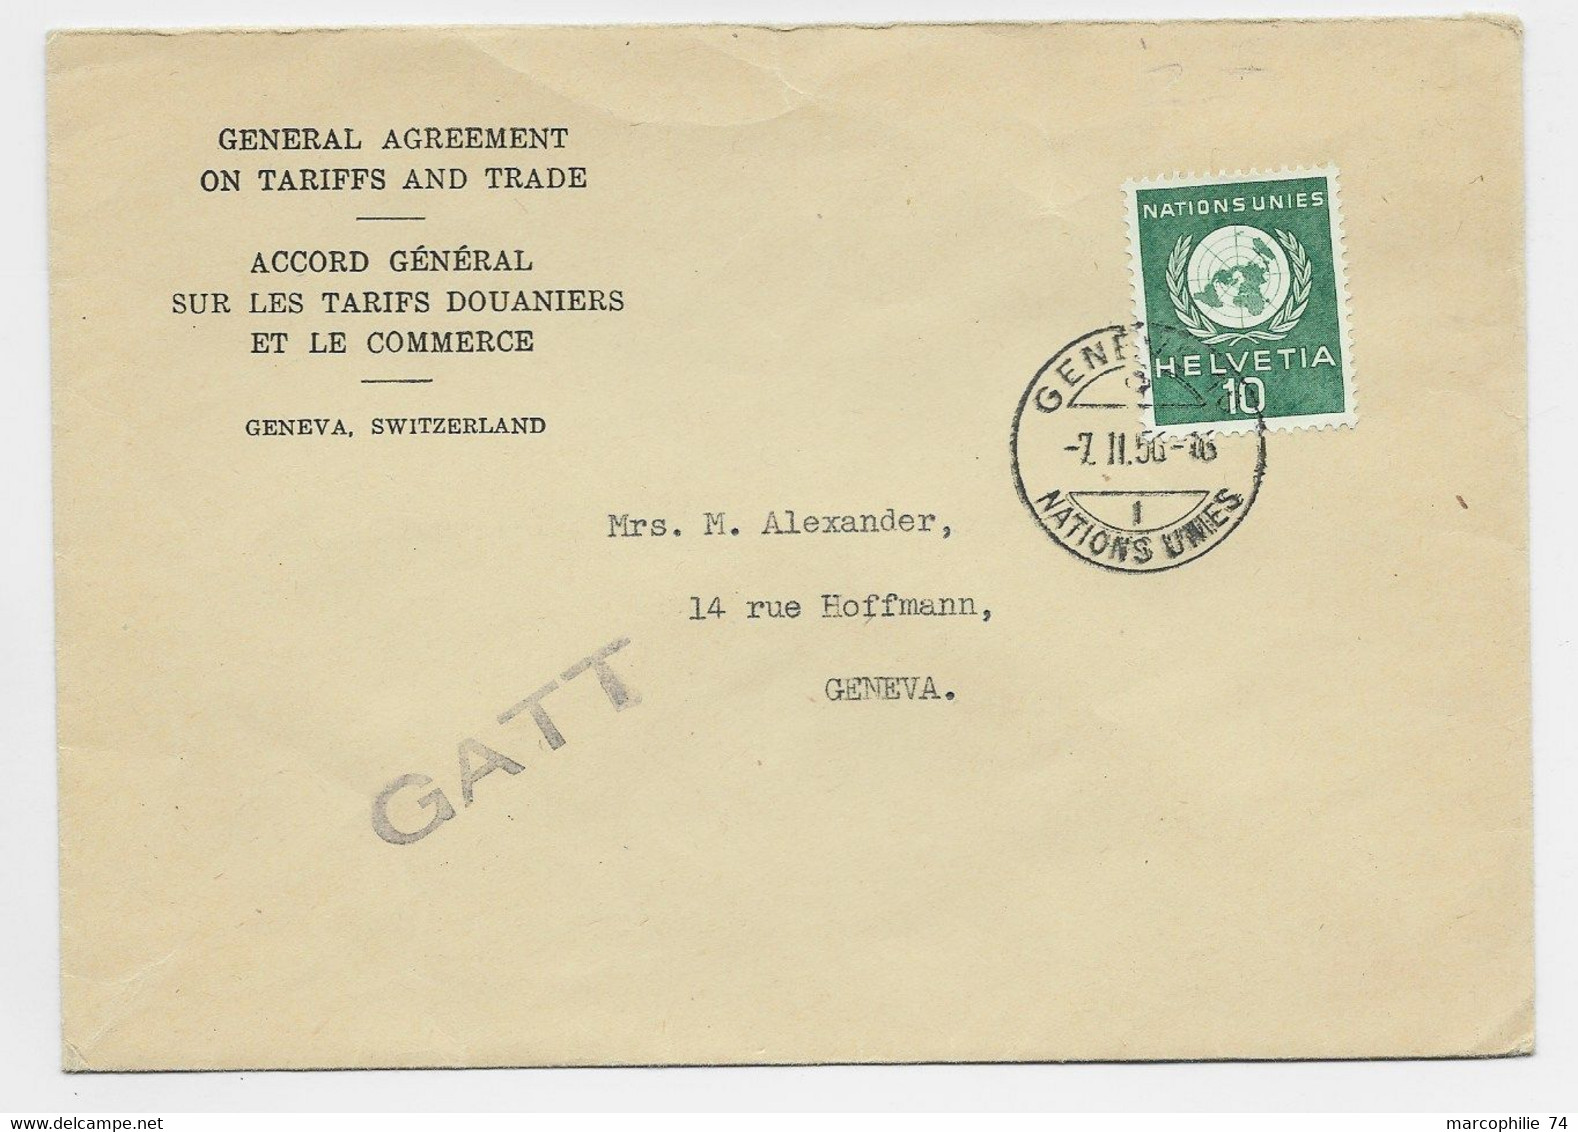 HELVETIA SUISSE 10C NATIONS UNIES LETTRE COVER ENTETE ACCORD TARIF DOUANIERS GENEVE 7.II.1956 NAIONS UNIES + GATT - Covers & Documents